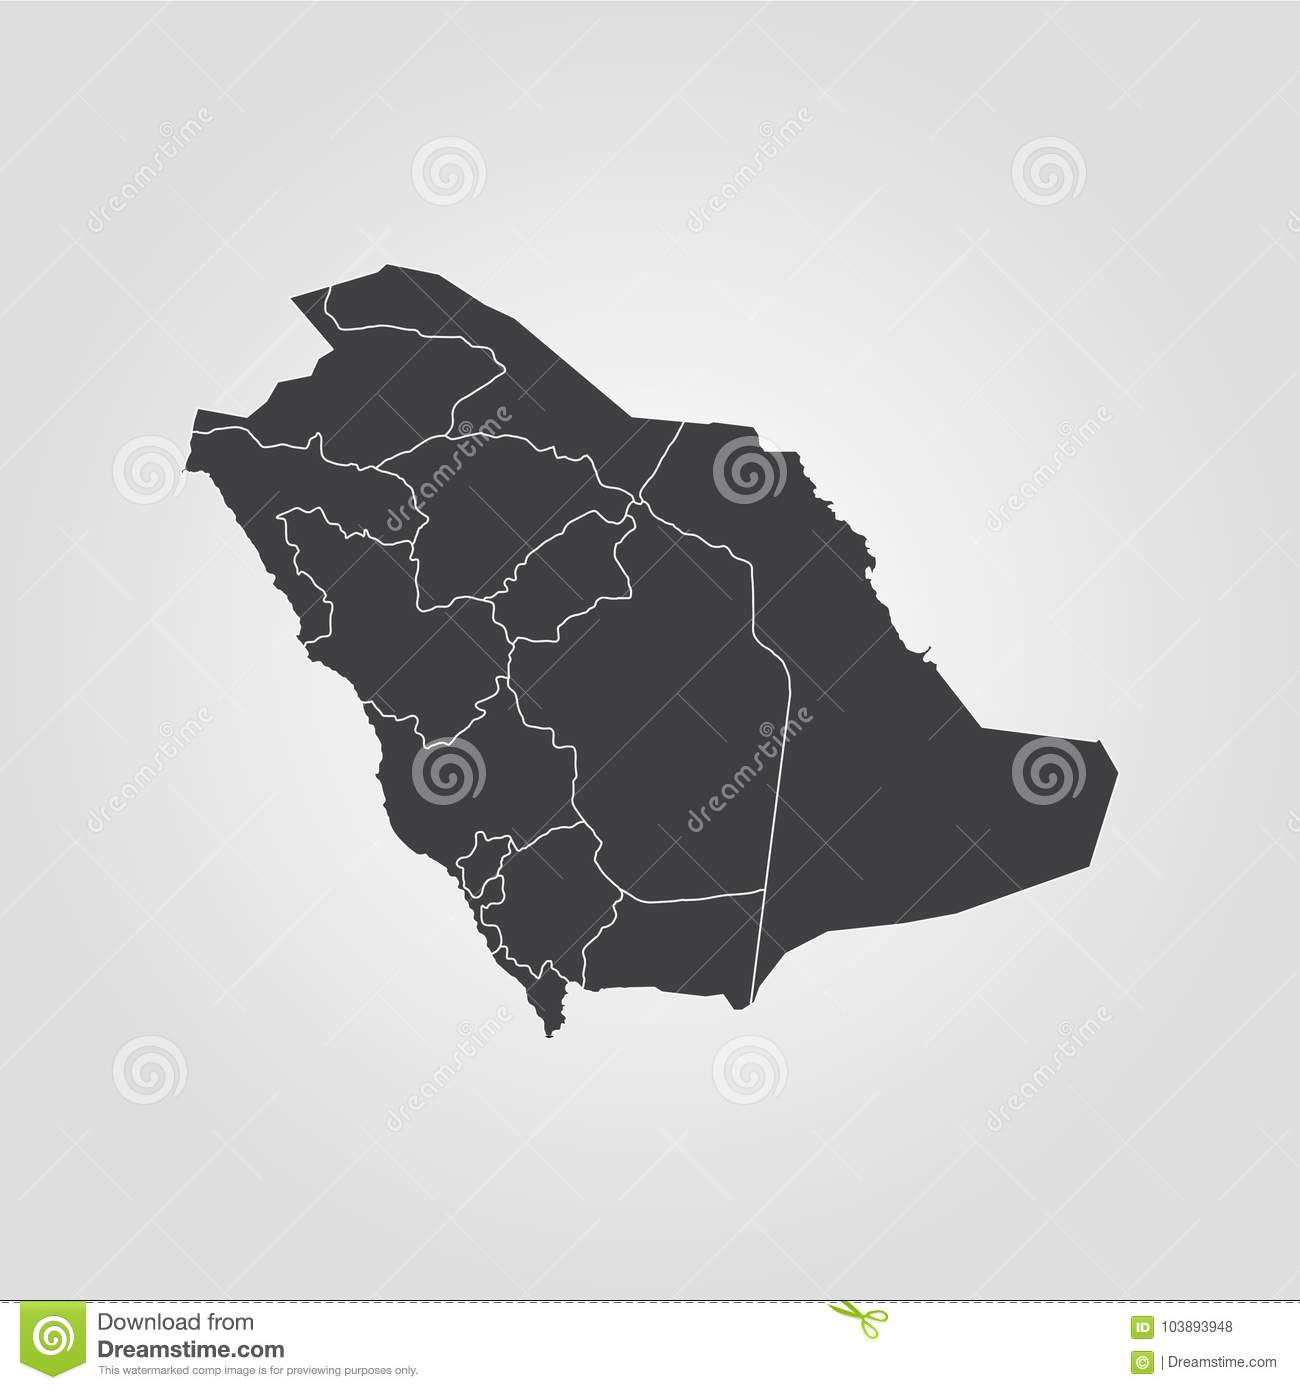 Map of Saudi Arabia stock illustration. Illustration of cartography ...